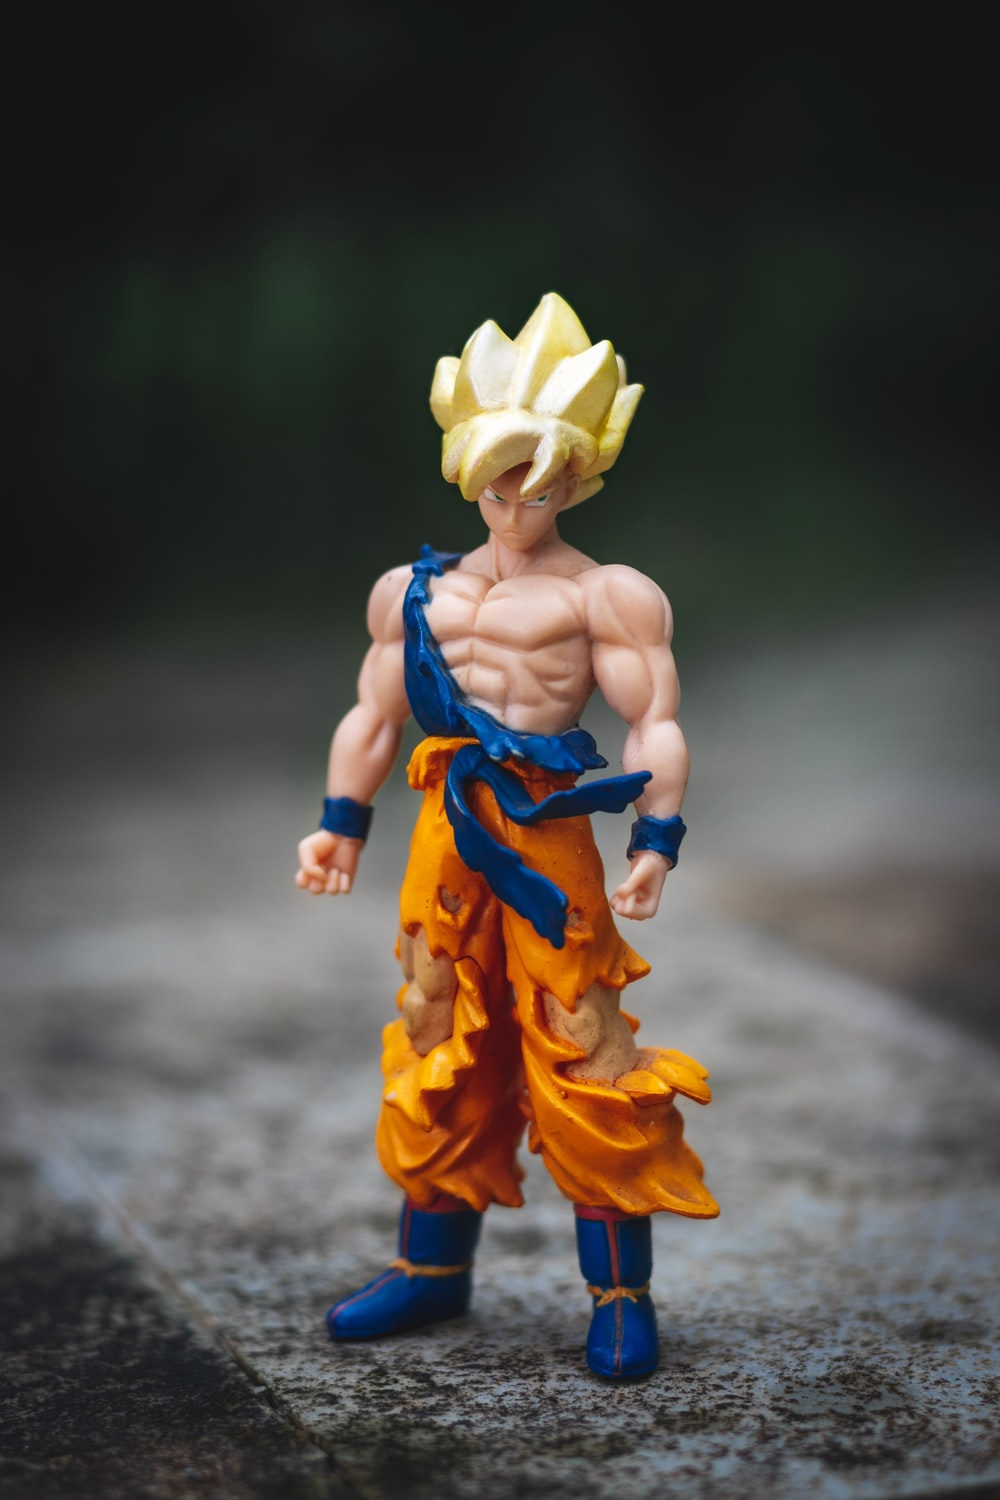 action figure toy